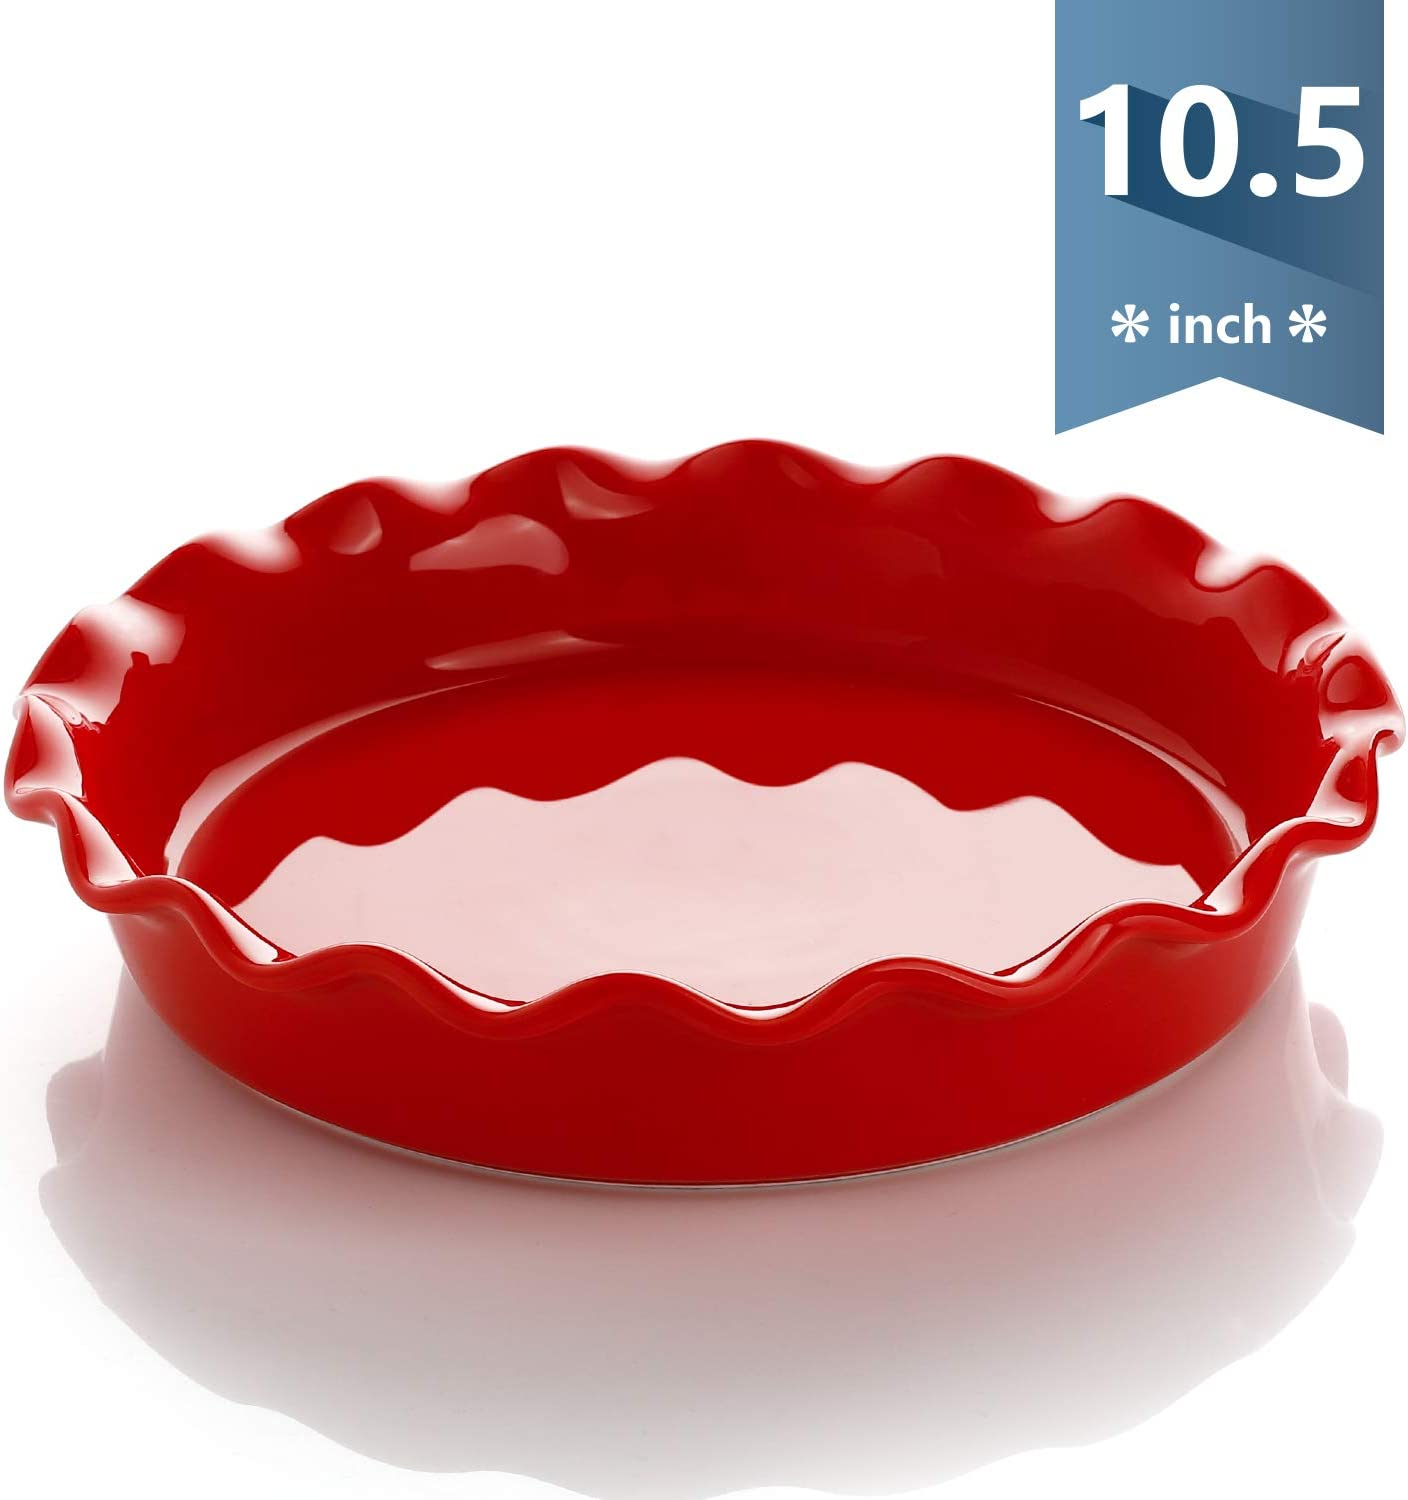 Sweese 518.104 Porcelain Pie Pan, Round Pie Plate Baking Dish with Ruffled Edge, 10.5 Inches, Red